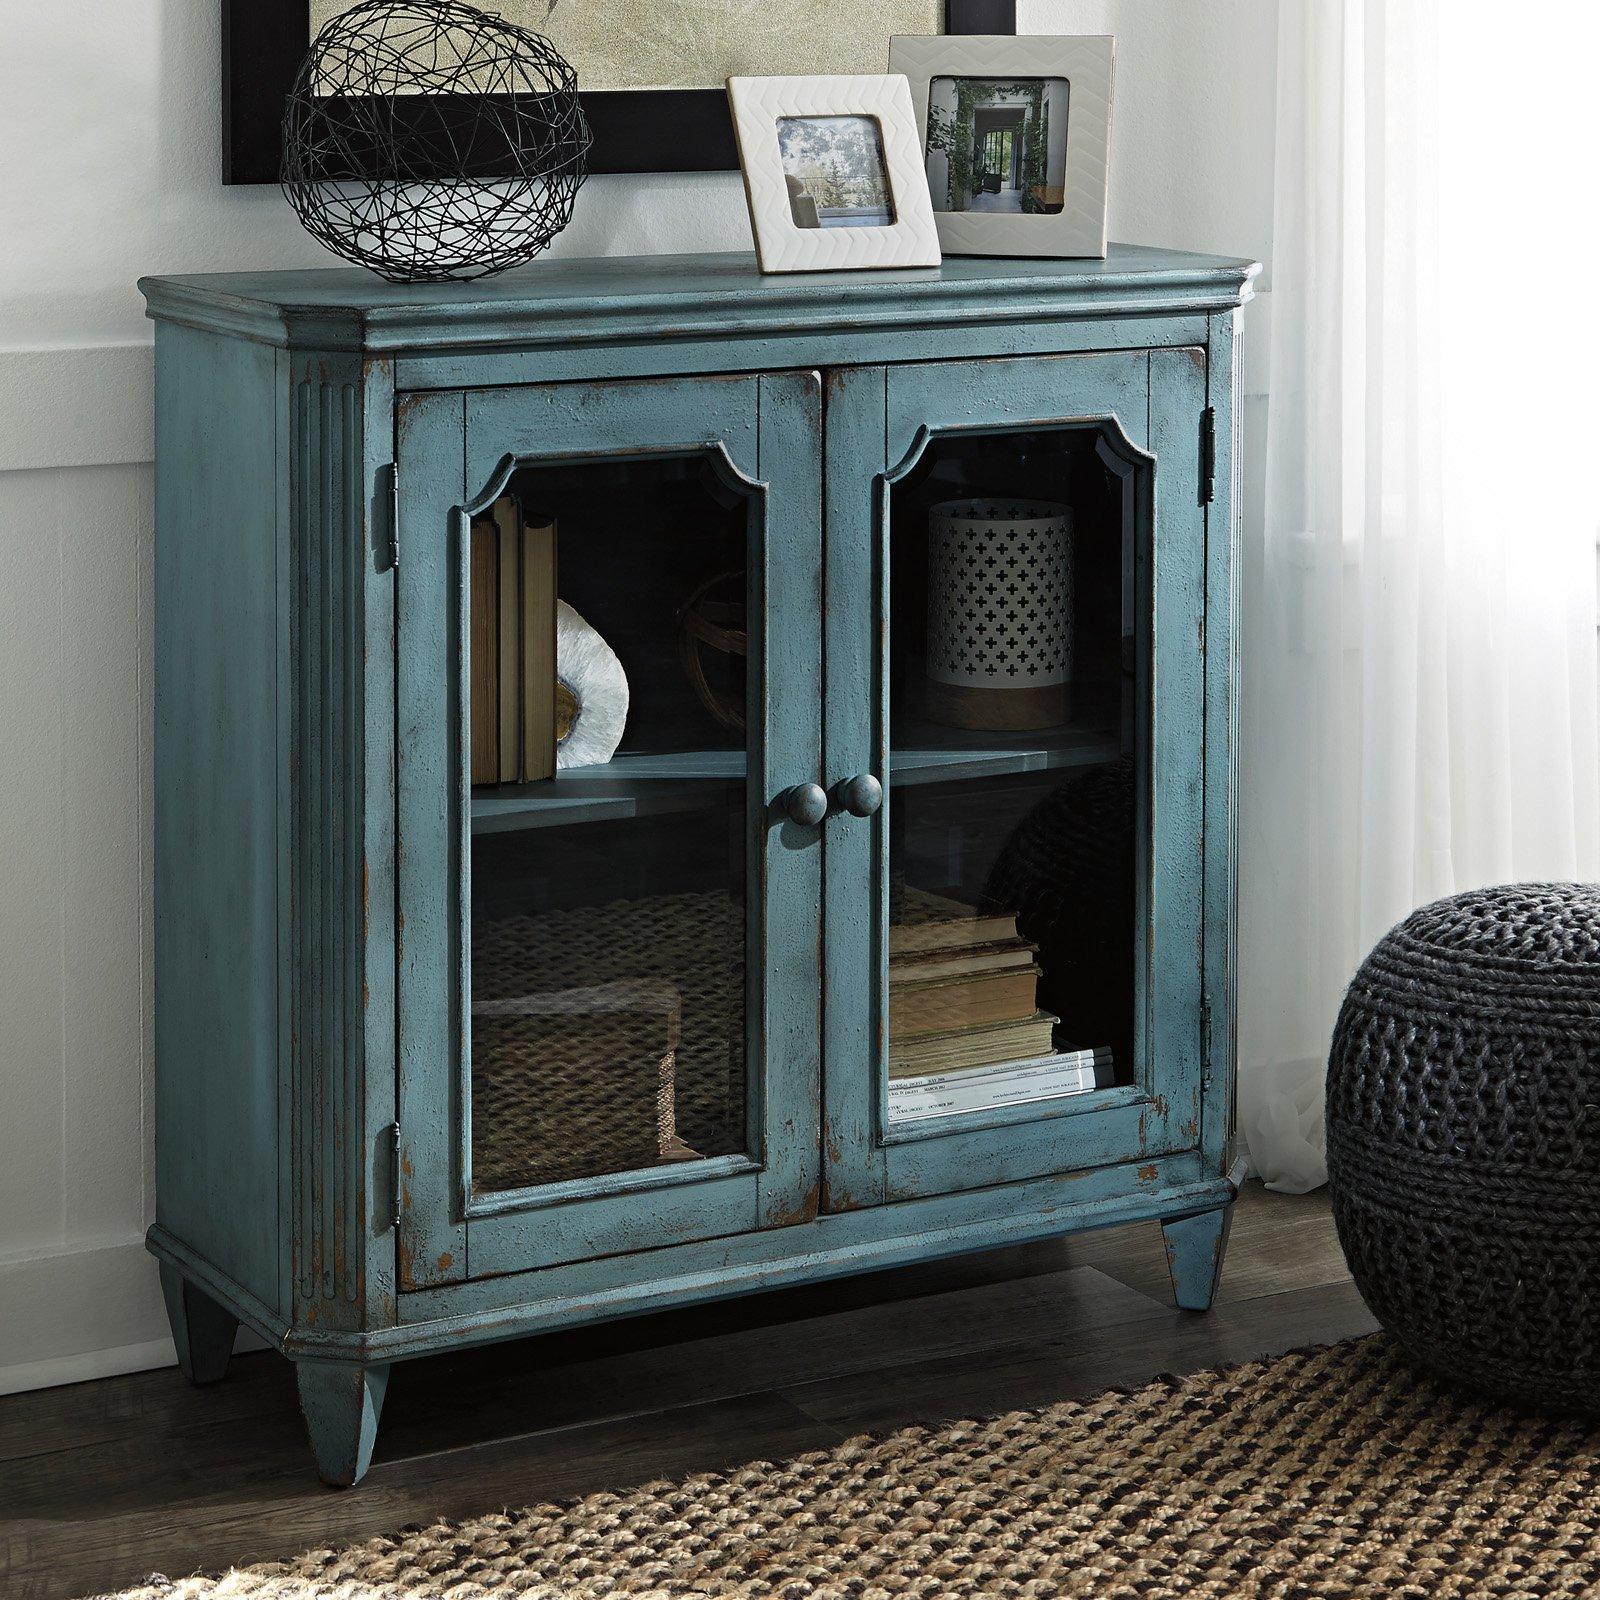 ashley furniture mirimyn antique teal accent cabinet with framed table glass doors outdoor umbrella cantilever west elm owl lamp small side chairs for living room marble look